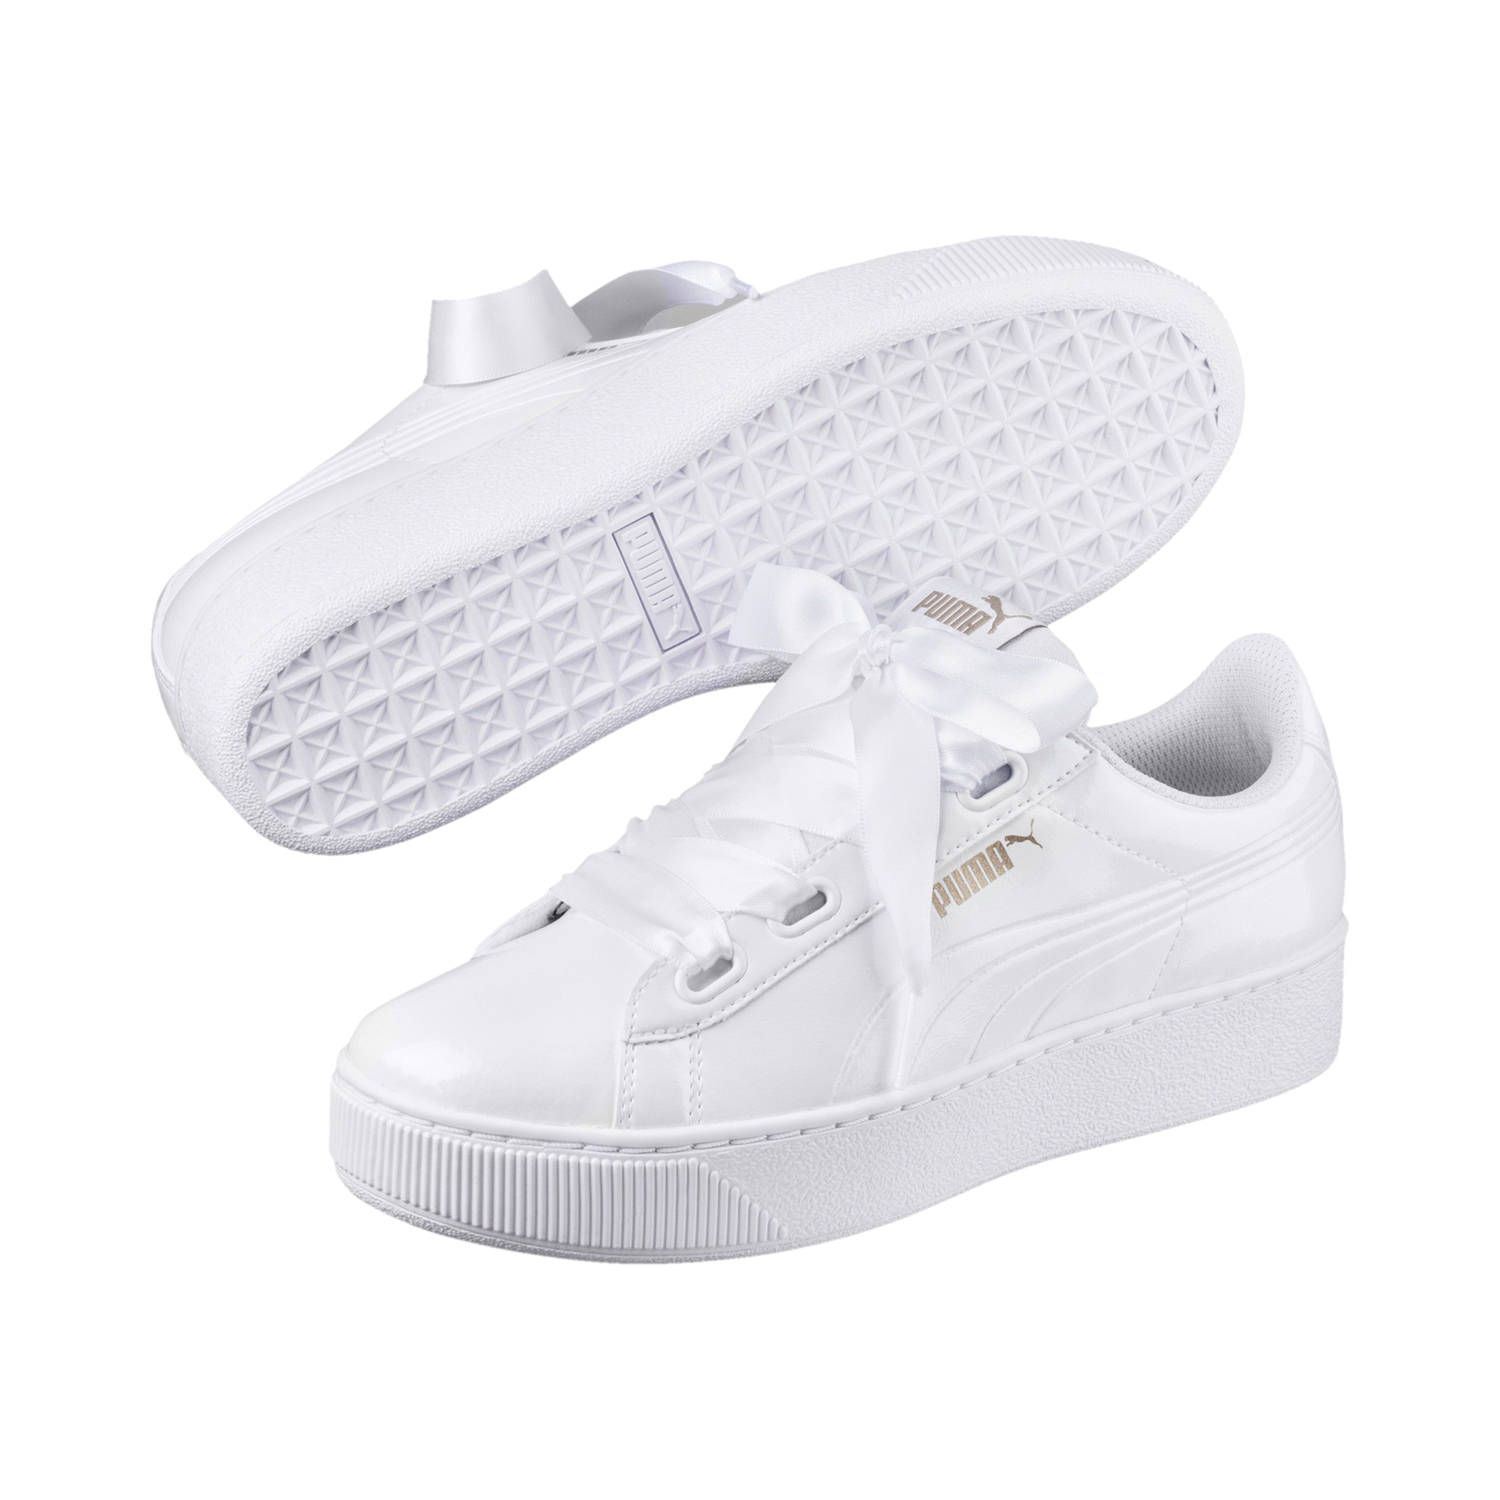 PUMA Puma suede classical music sneakers SUEDE CLASSIC + 356,568 61 men's lady's shoes gray